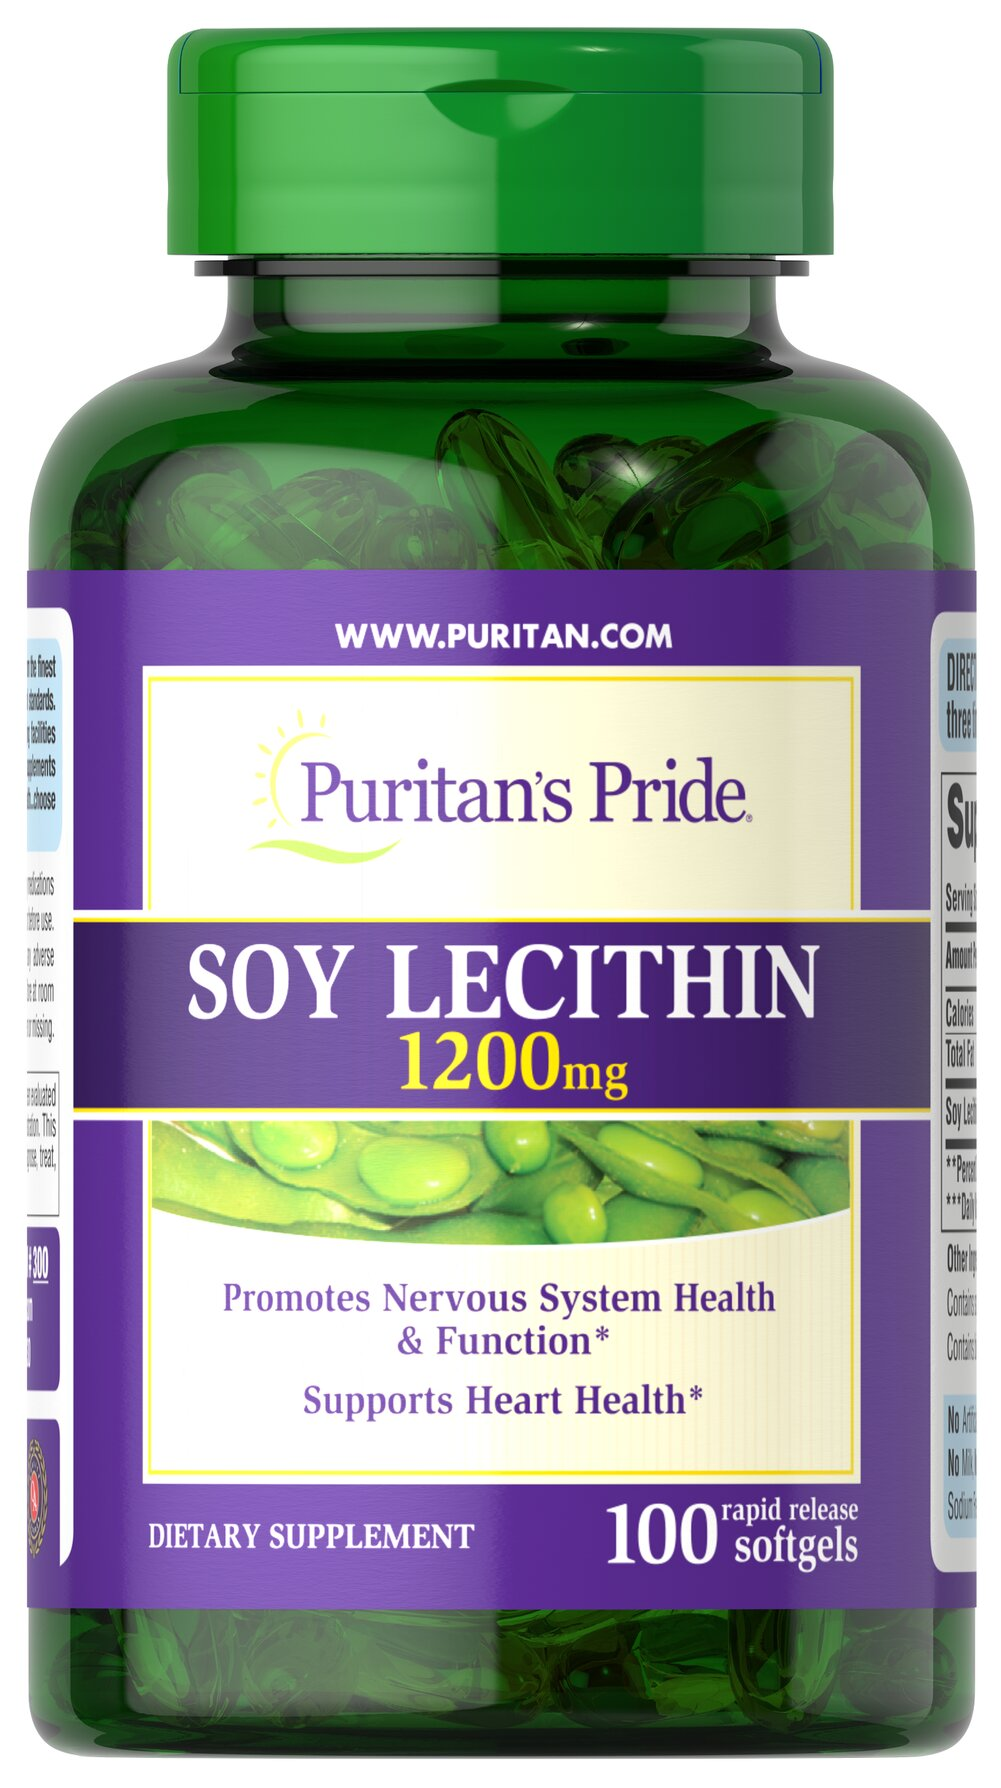 Soy Lecithin 1200 mg <p>Lecithin is an important natural source of Choline and Inositol, two nutrients important for the proper functioning of the body.** Since levels of phospholipids in the brain can decline as you get older, it may be especially important to supplement with a high-quality Lecithin formula from Puritan's Pride.</p> 100 Softgels 1200 mg $12.99